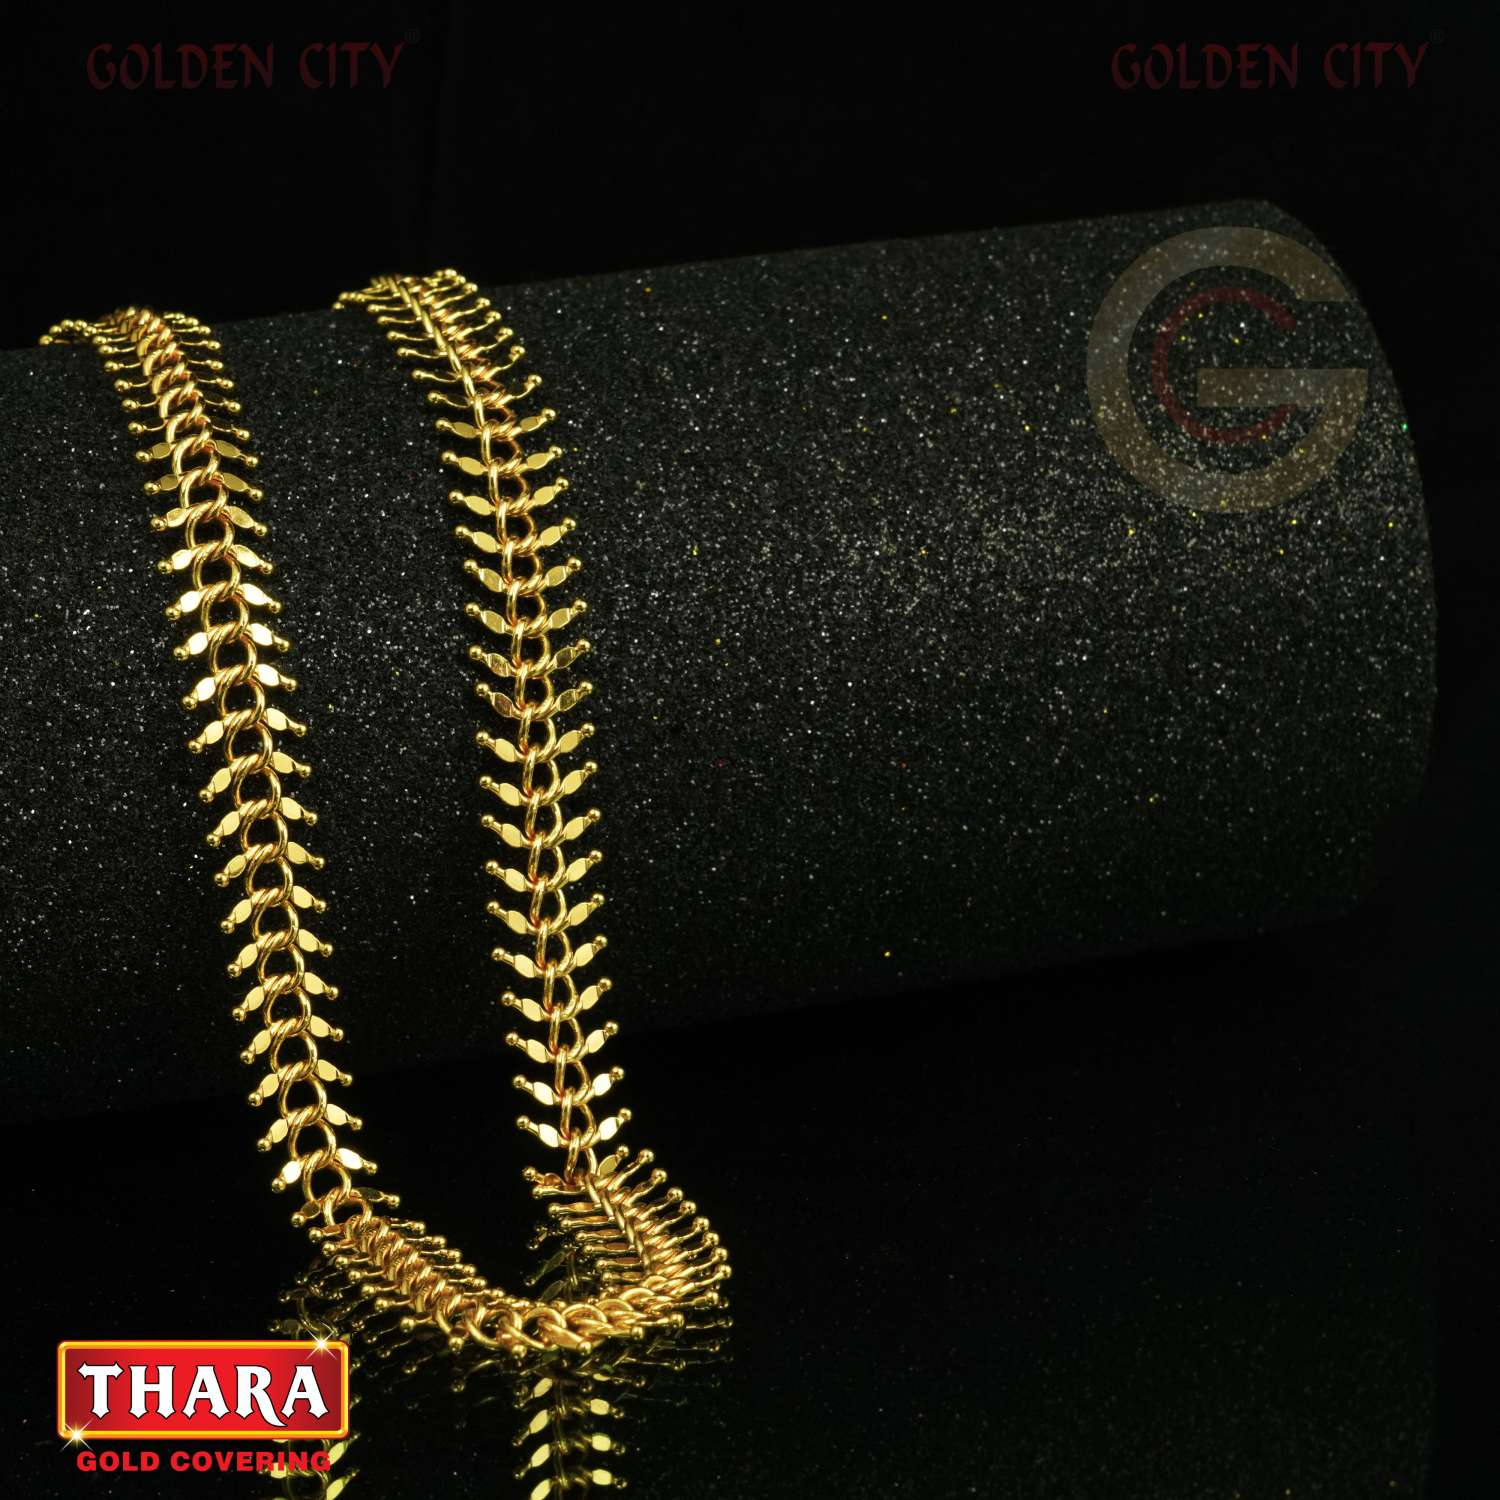 18 DEEKSHA Fancy chain